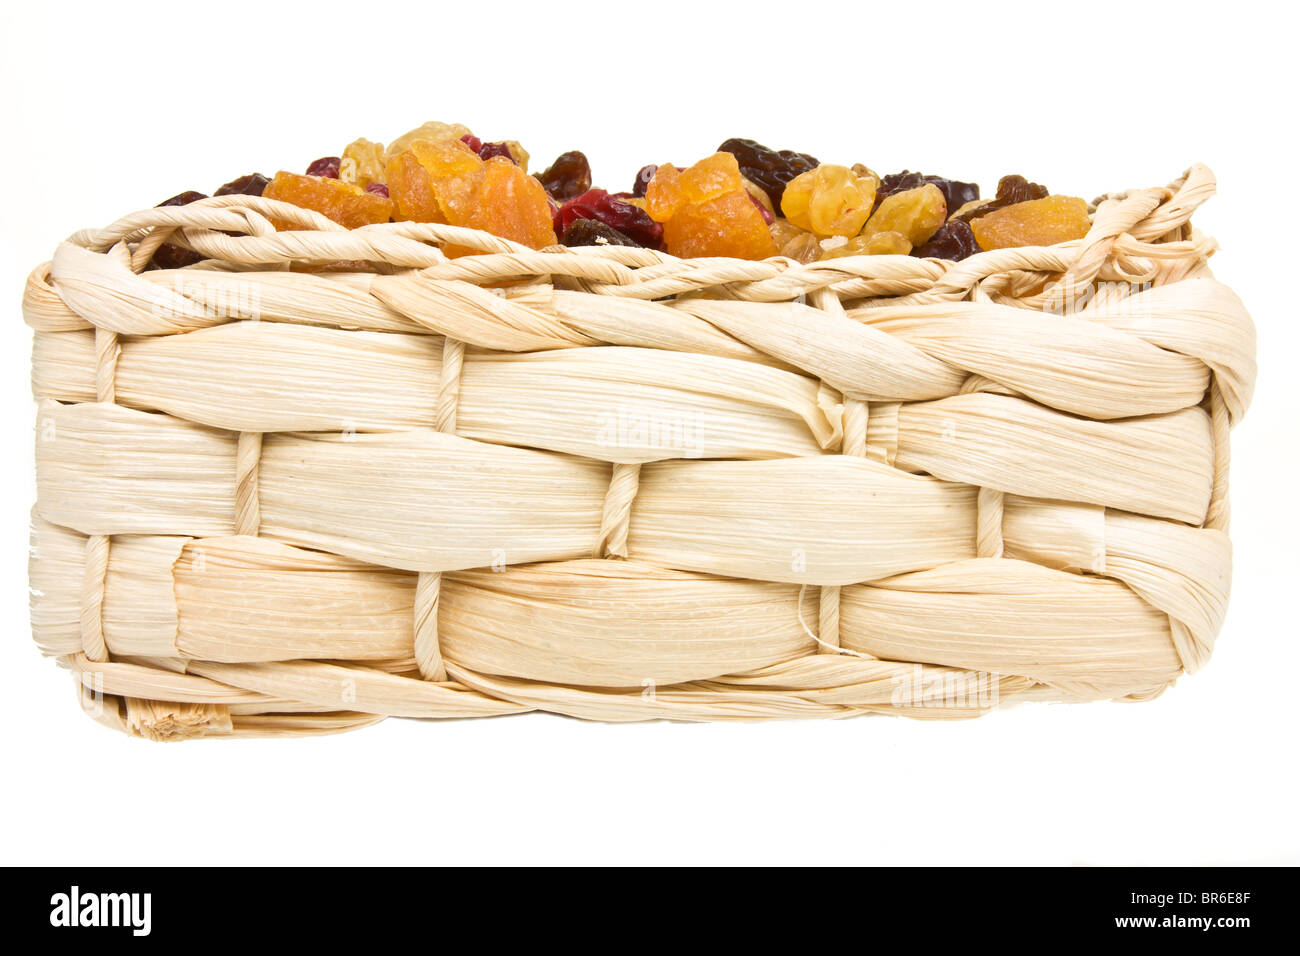 Mixed Dried Fruits of Apricots, sultana, raisins and cranberries in wicker basket. - Stock Image